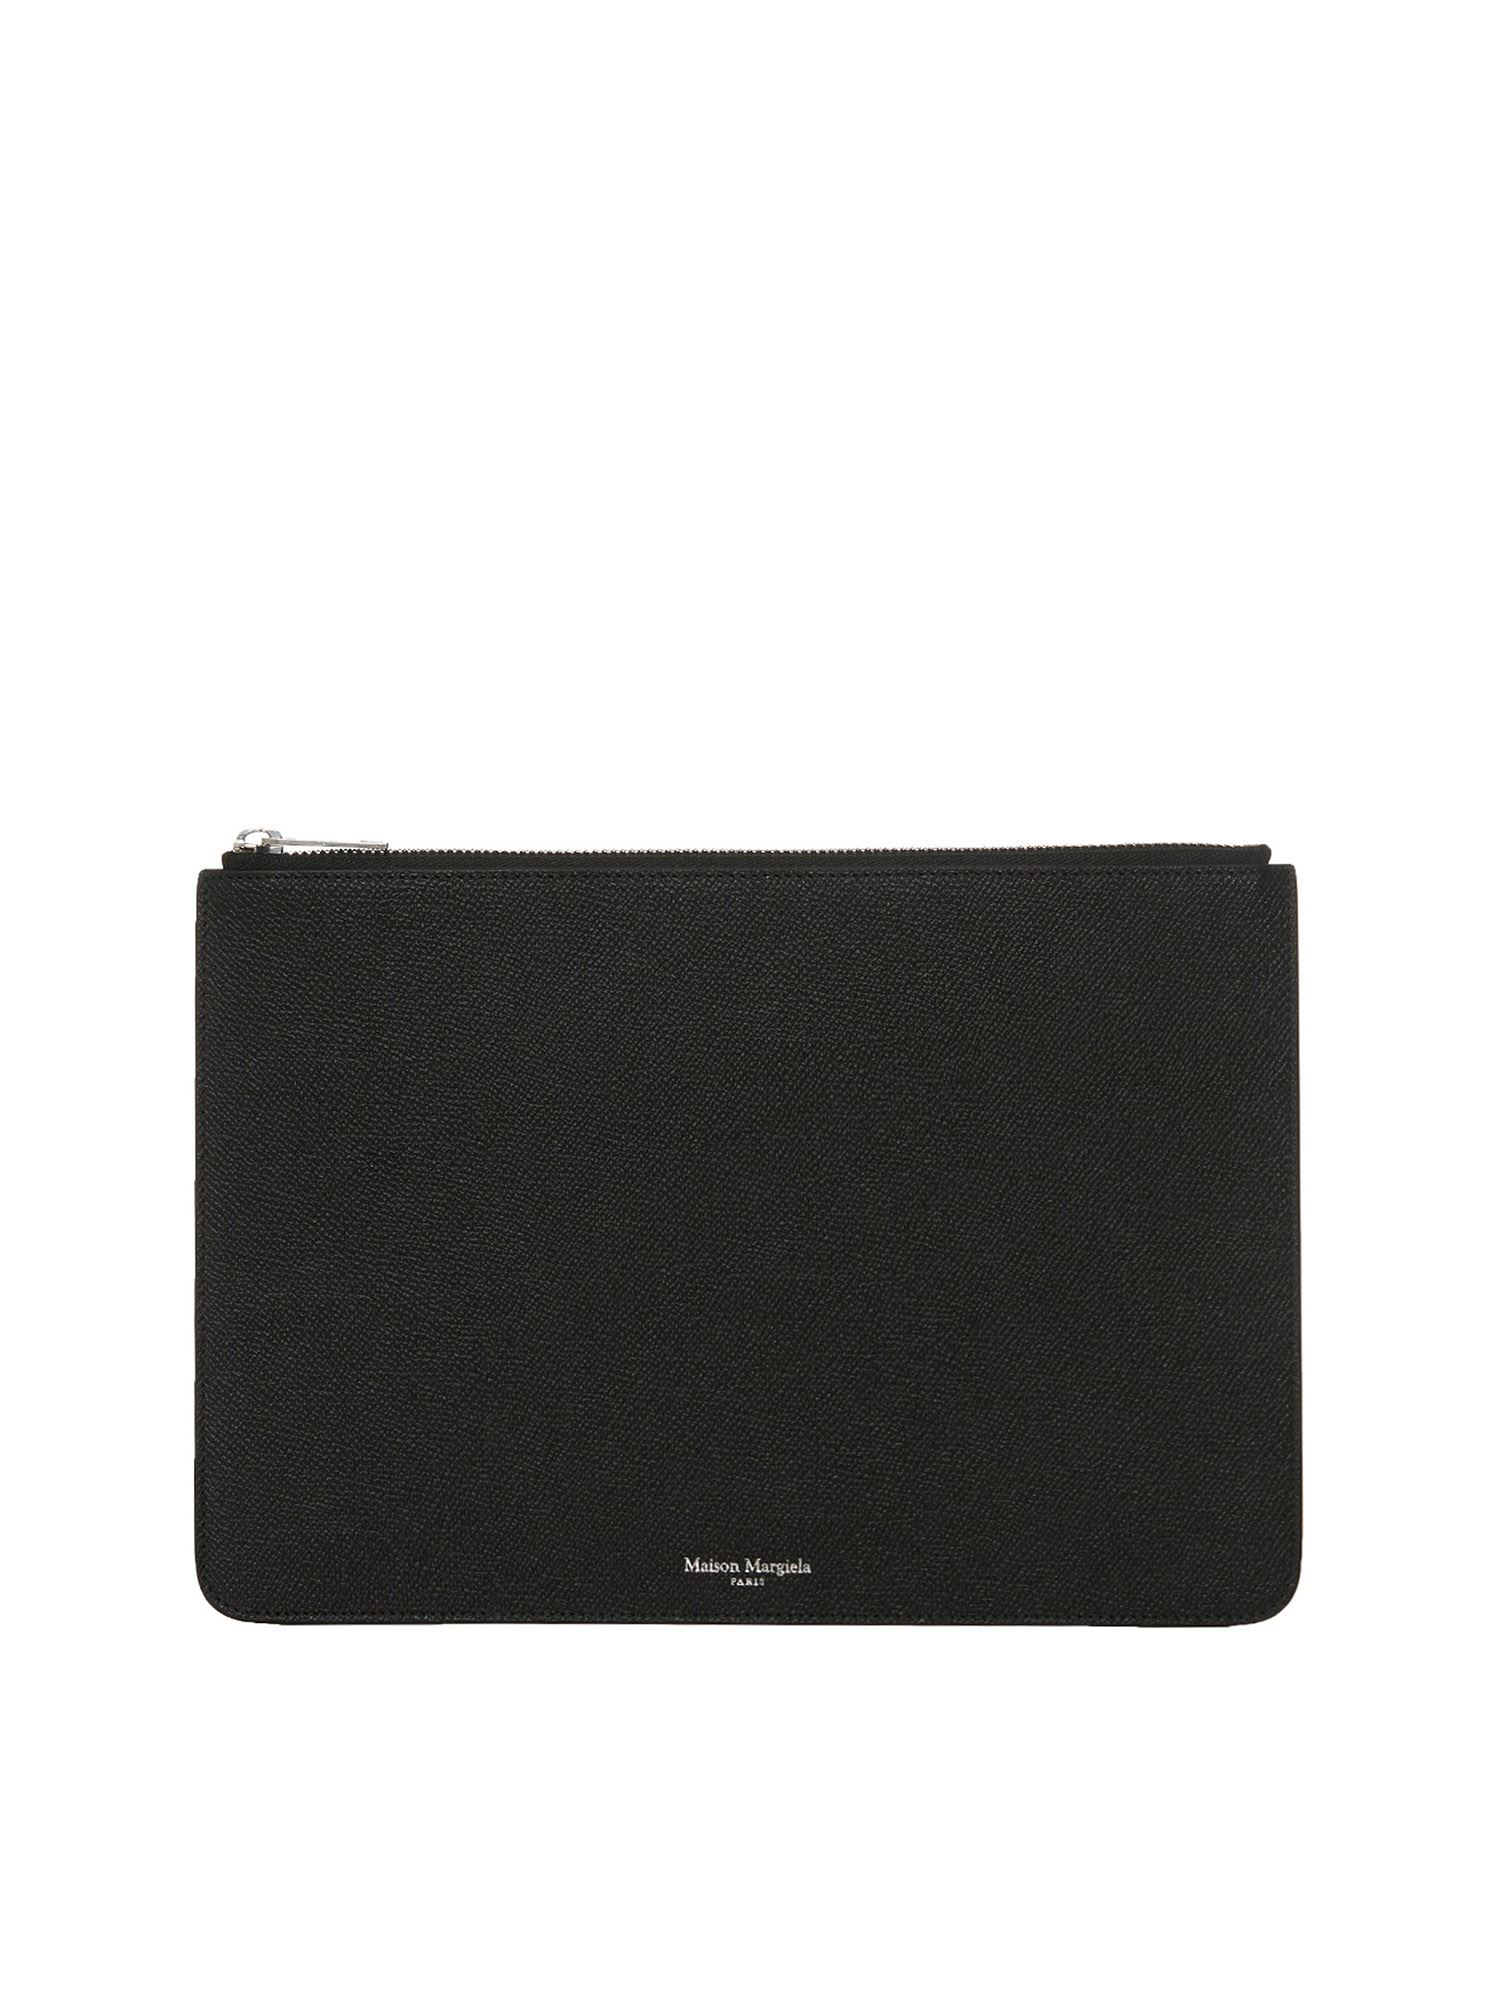 Maison Margiela 4-STITCHING POUCH IN BLACK